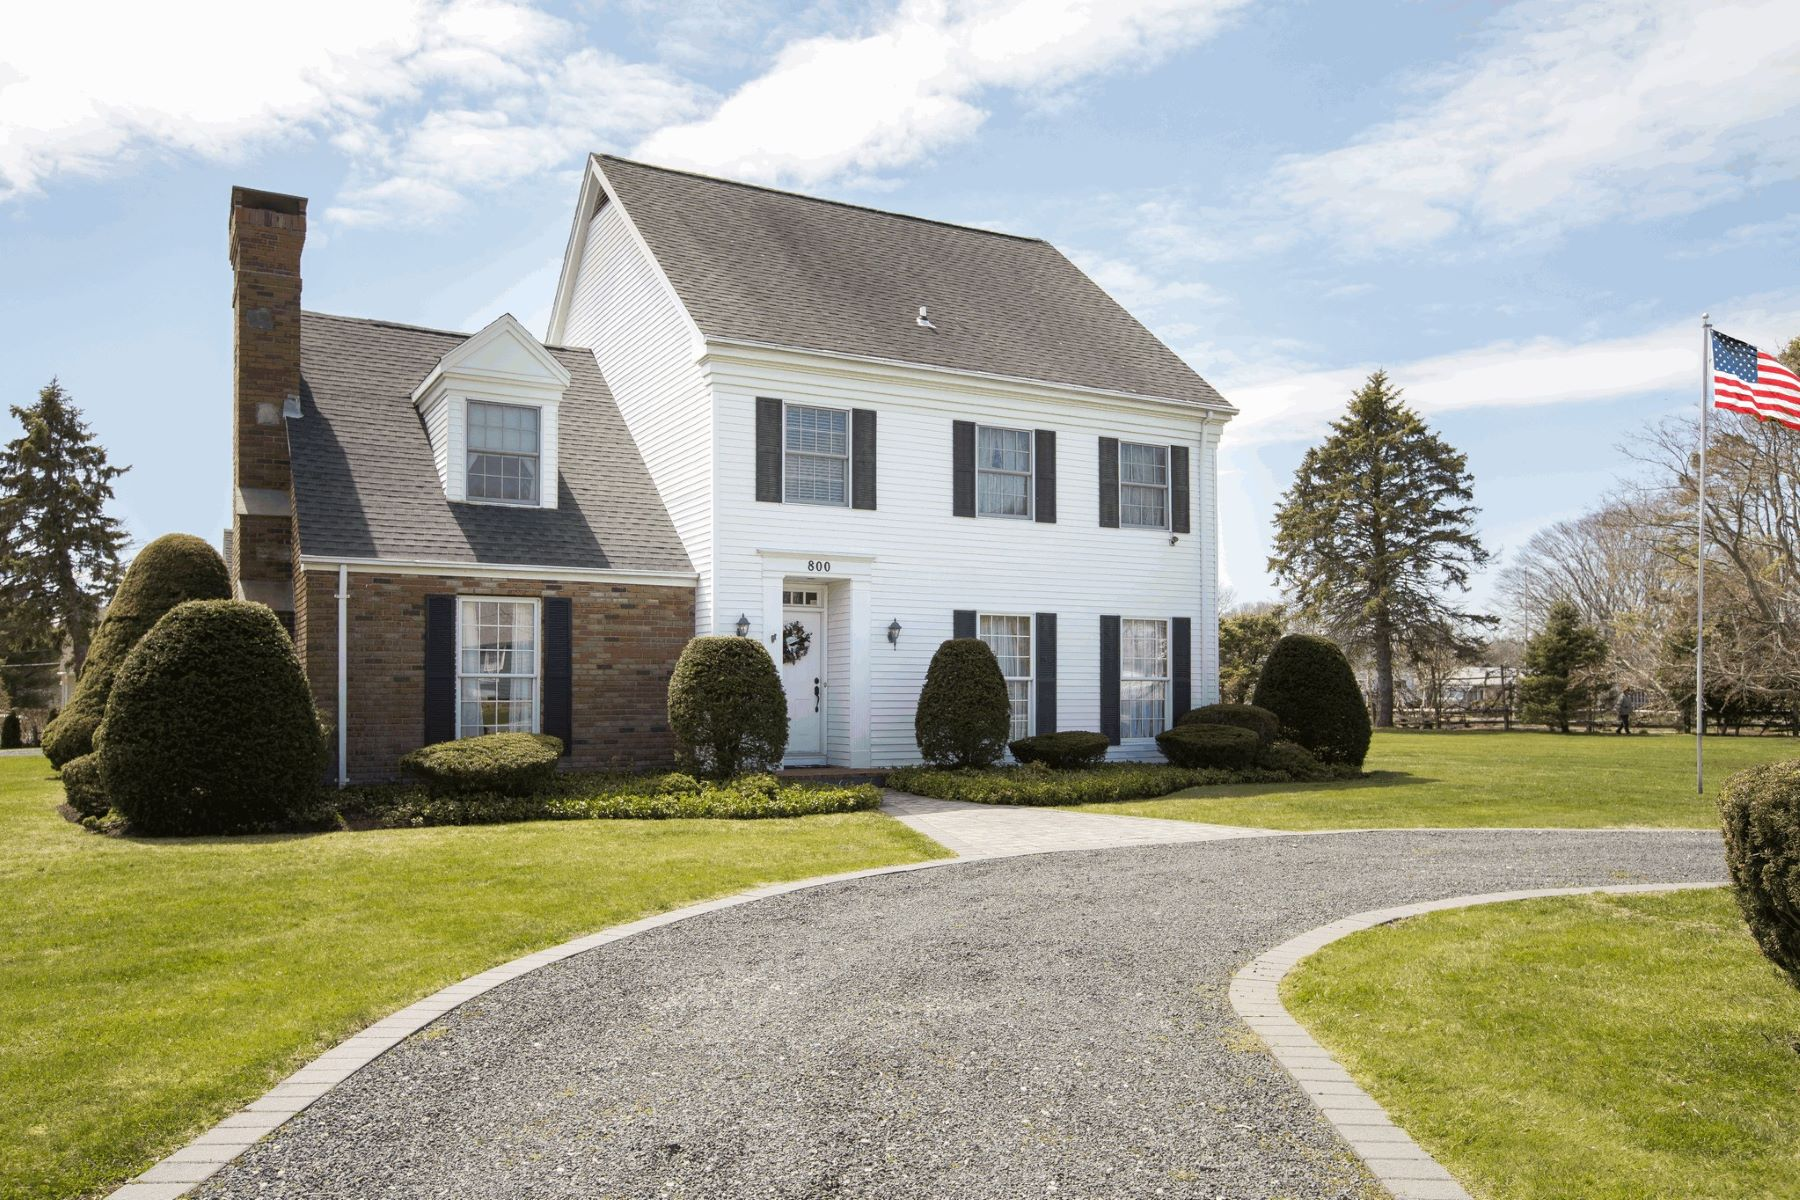 Single Family Home for Sale at 800 Mid Farm Rd , Southold, NY 11971 800 Mid Farm Rd Southold, New York 11971 United States